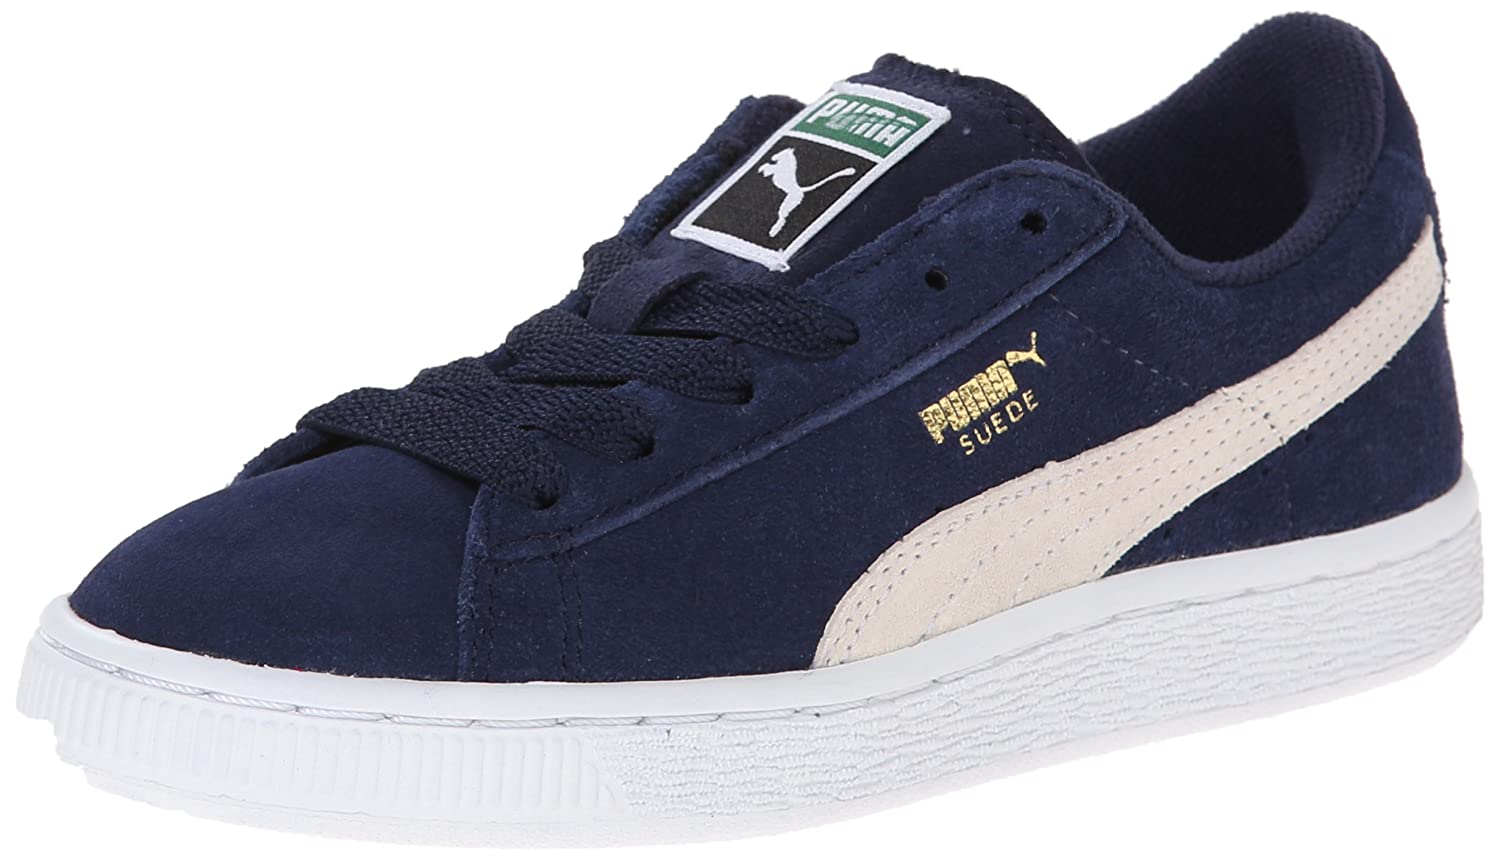 PUMA Suede JR Classic Kids Sneaker (Little Kid/Big Kid) B00OBV2C78 1 M US Little Kid|Peacoat/Team Gold